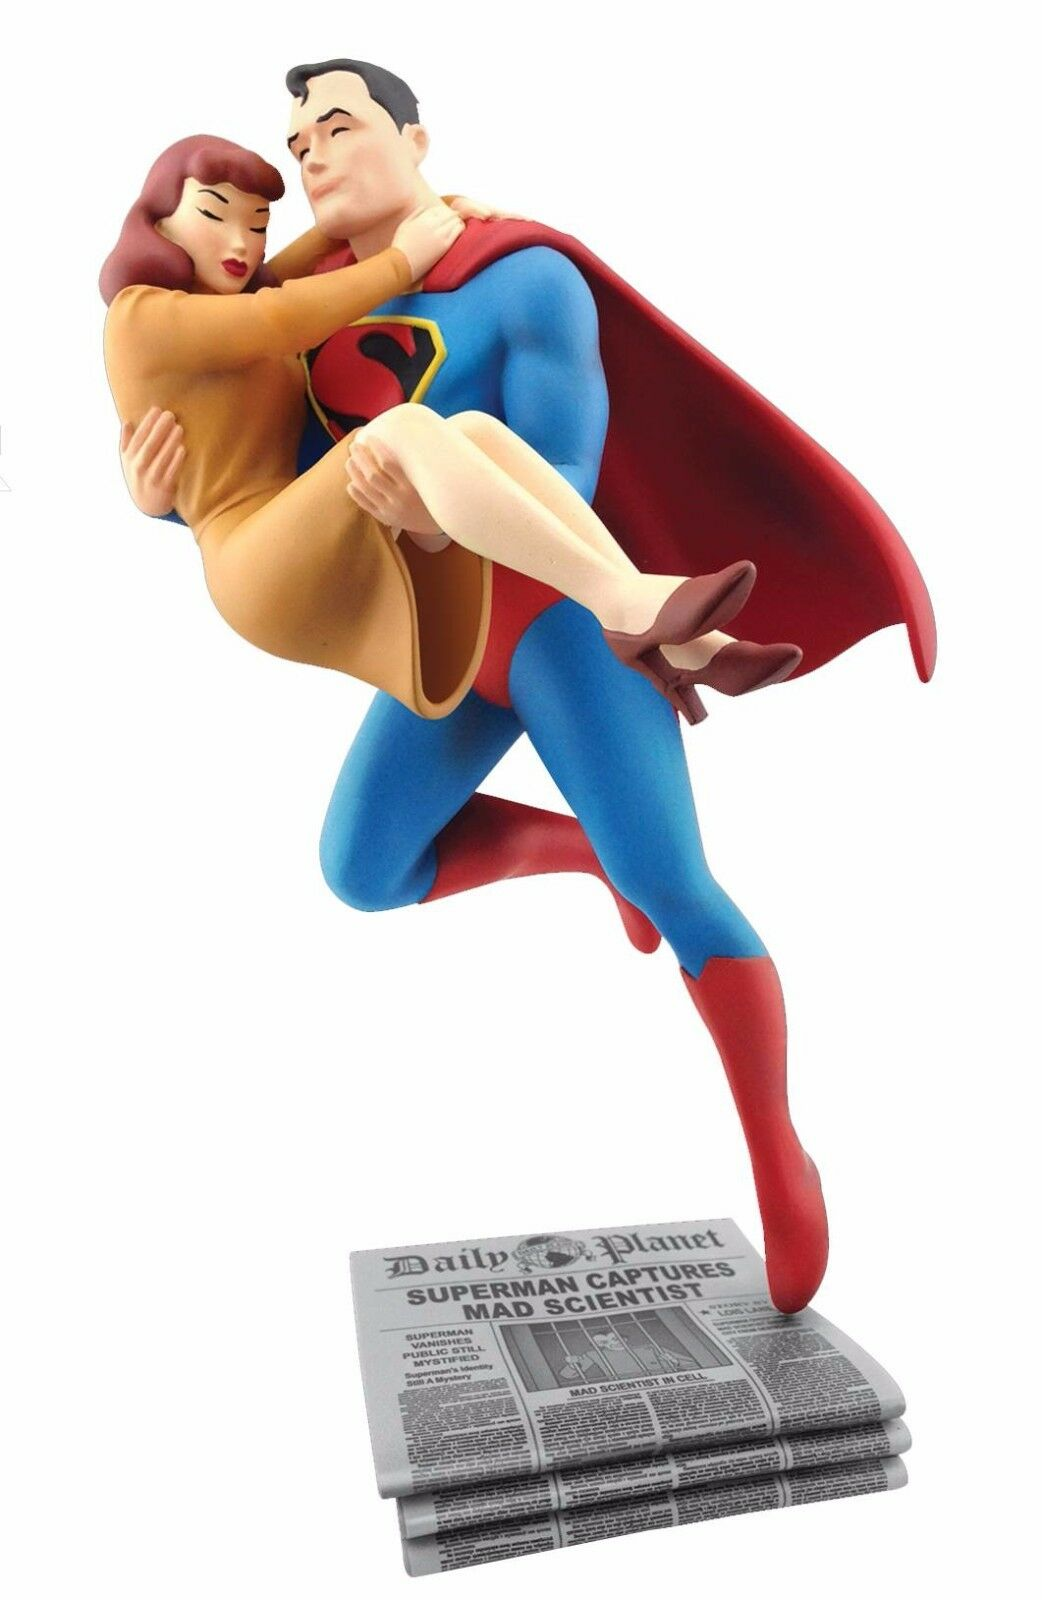 Fleischer superman lois lane statue retten